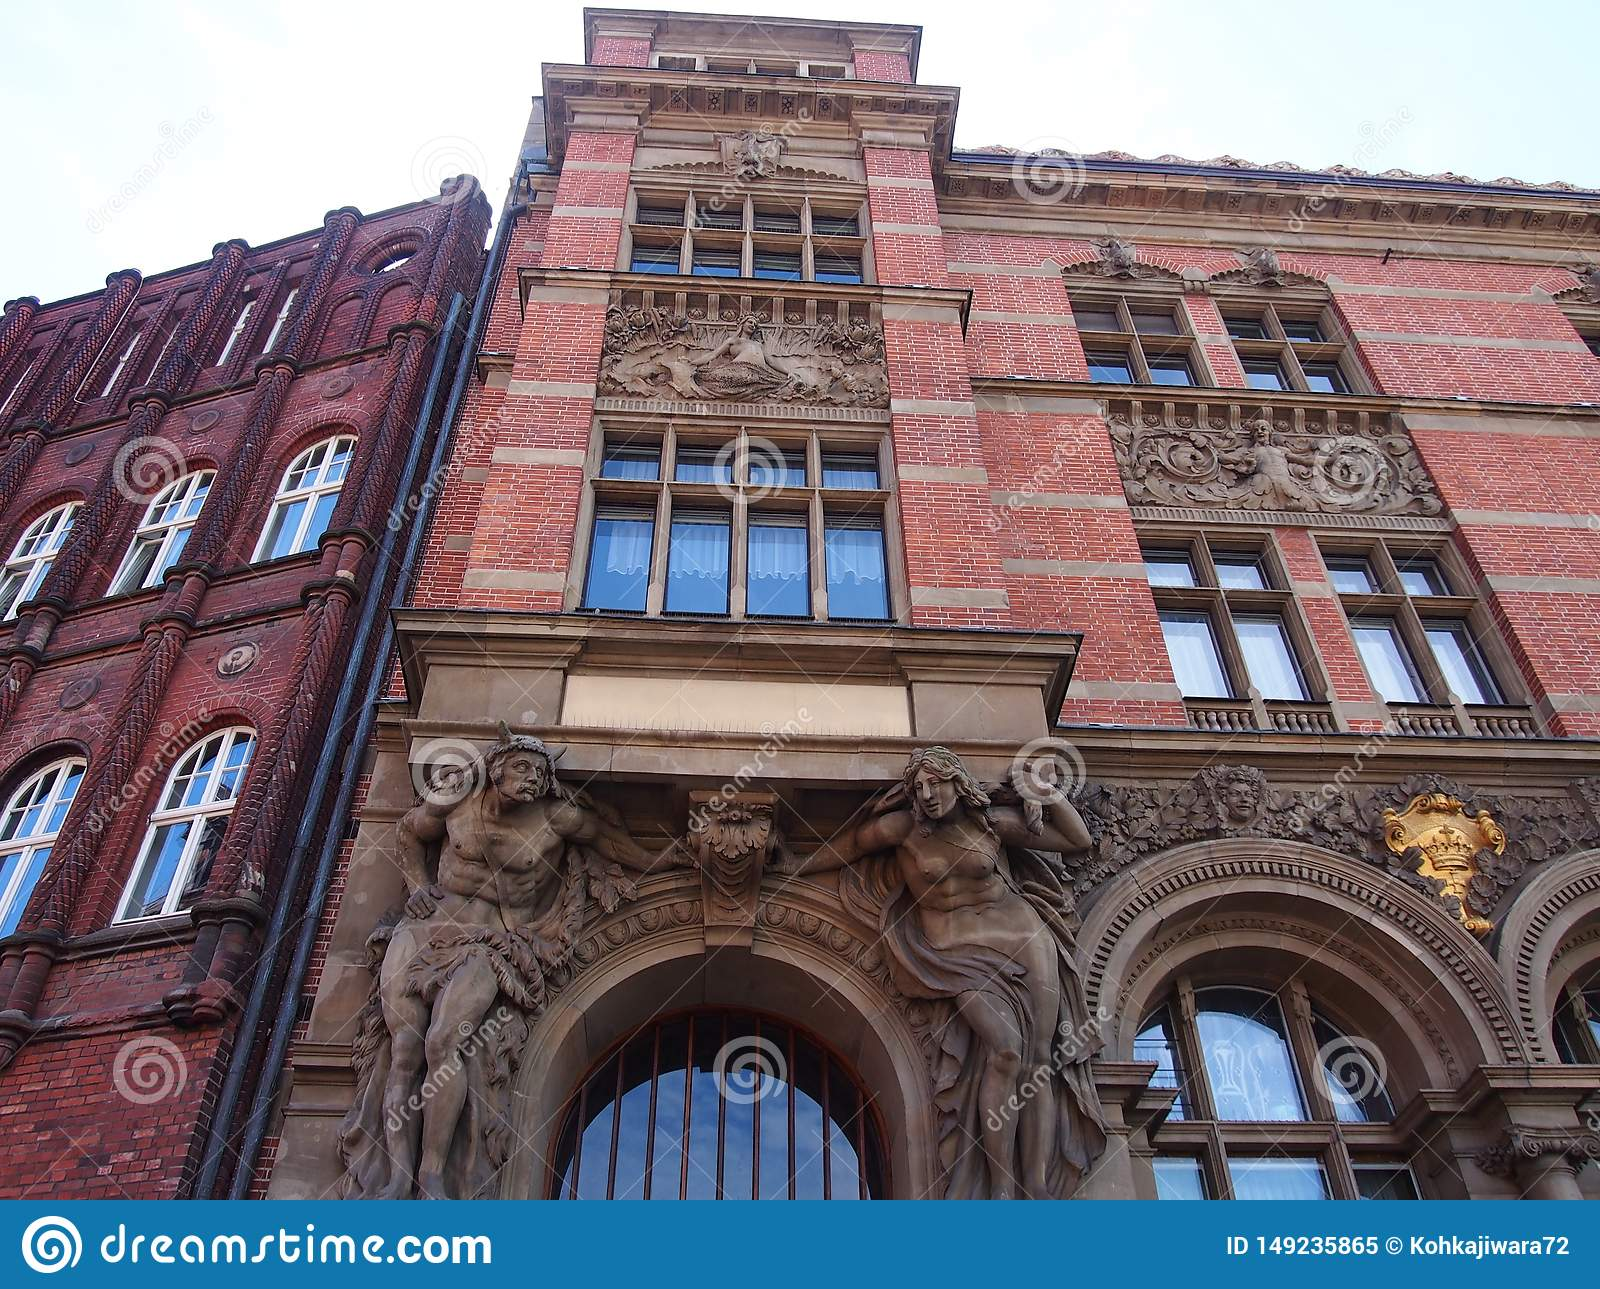 A heavily decorated classical buildings in gdansk, Poland red bricks, sculptures and arches